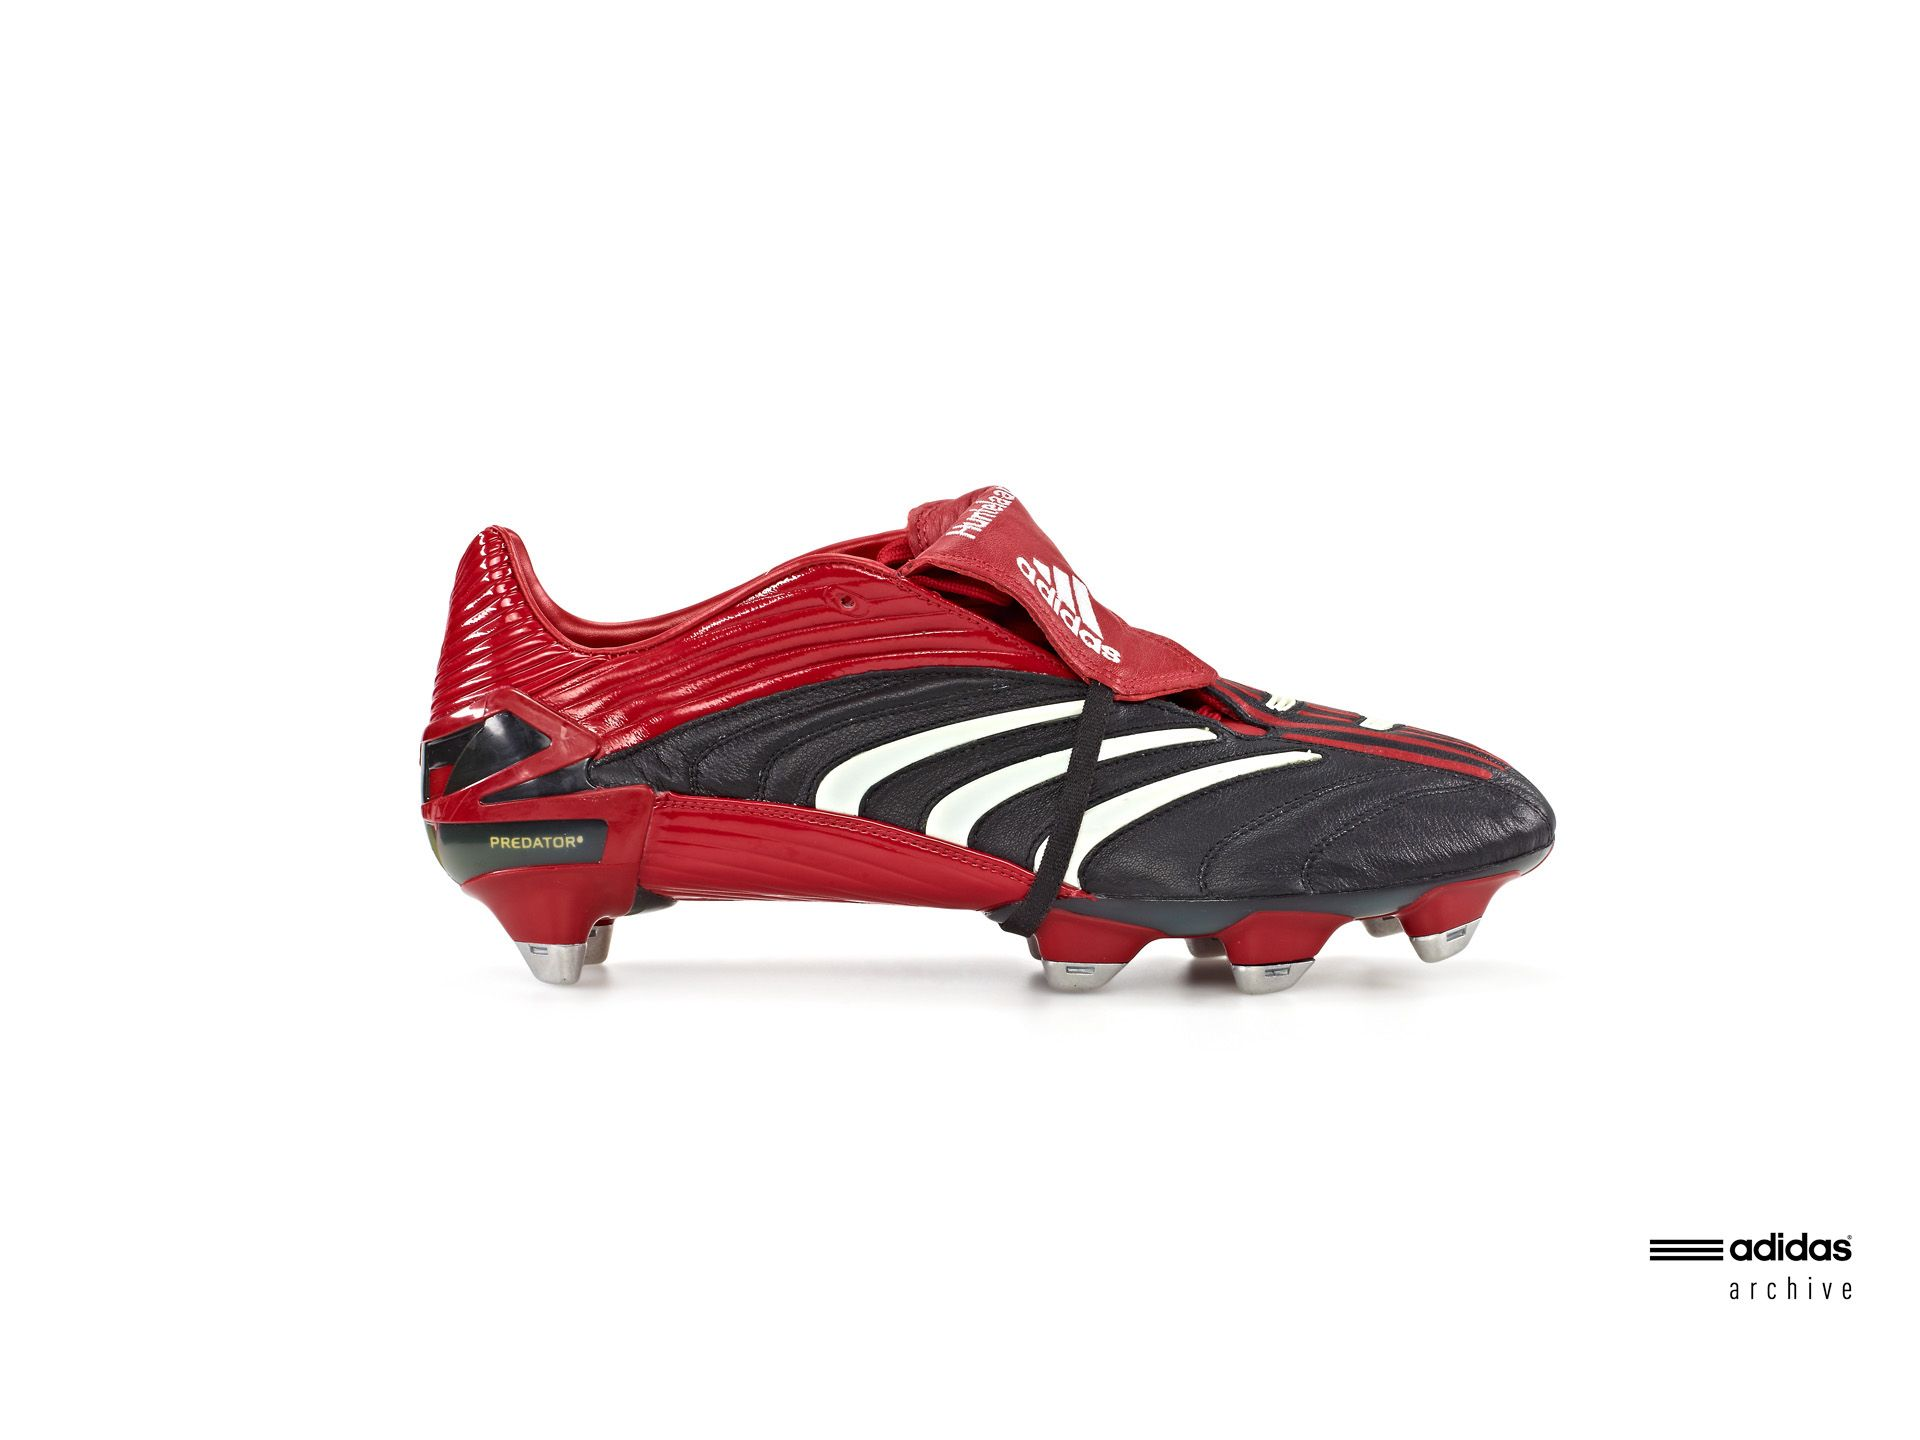 finest selection 11253 1fe69 Adidas Predator Absolute